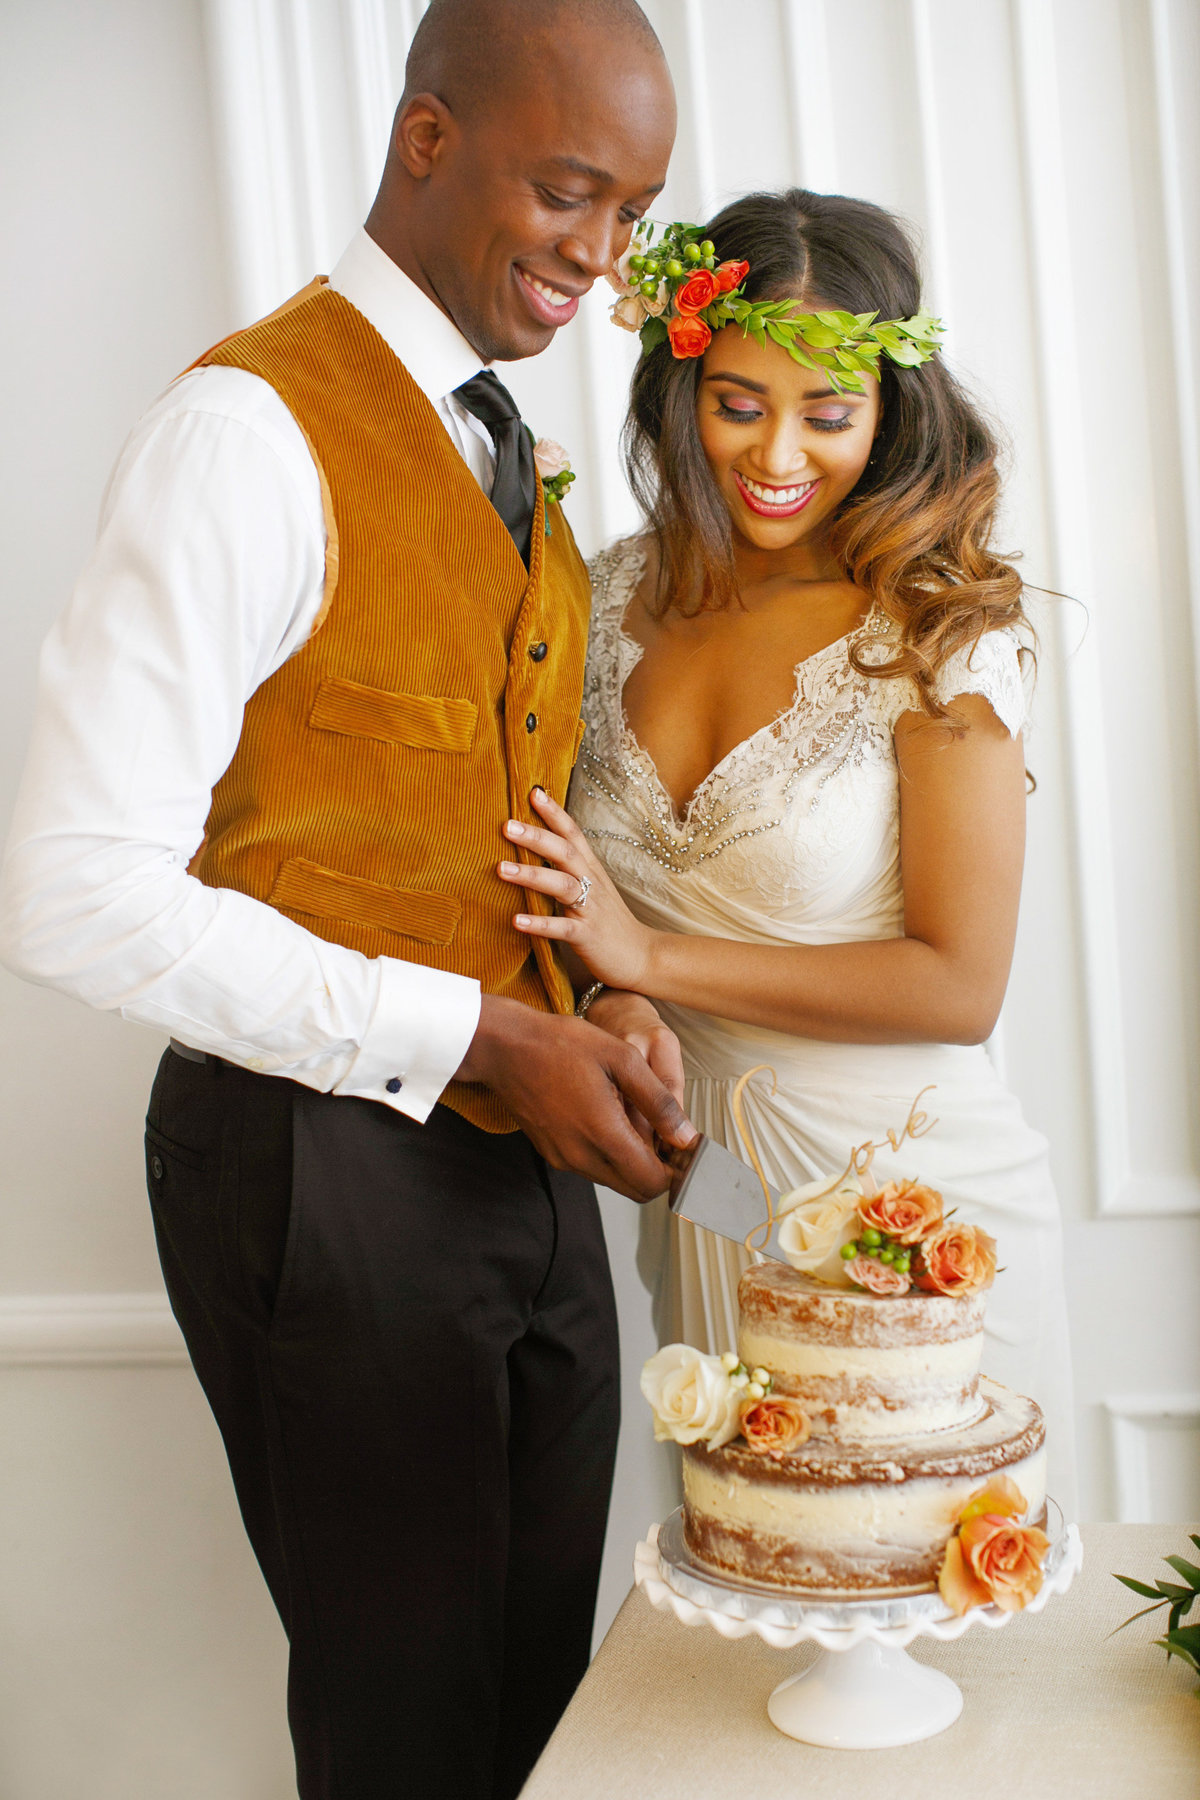 AmyAnaiz__Intimate_Elopement_Maison_May_Dekalb_Brooklyn_New_York_028